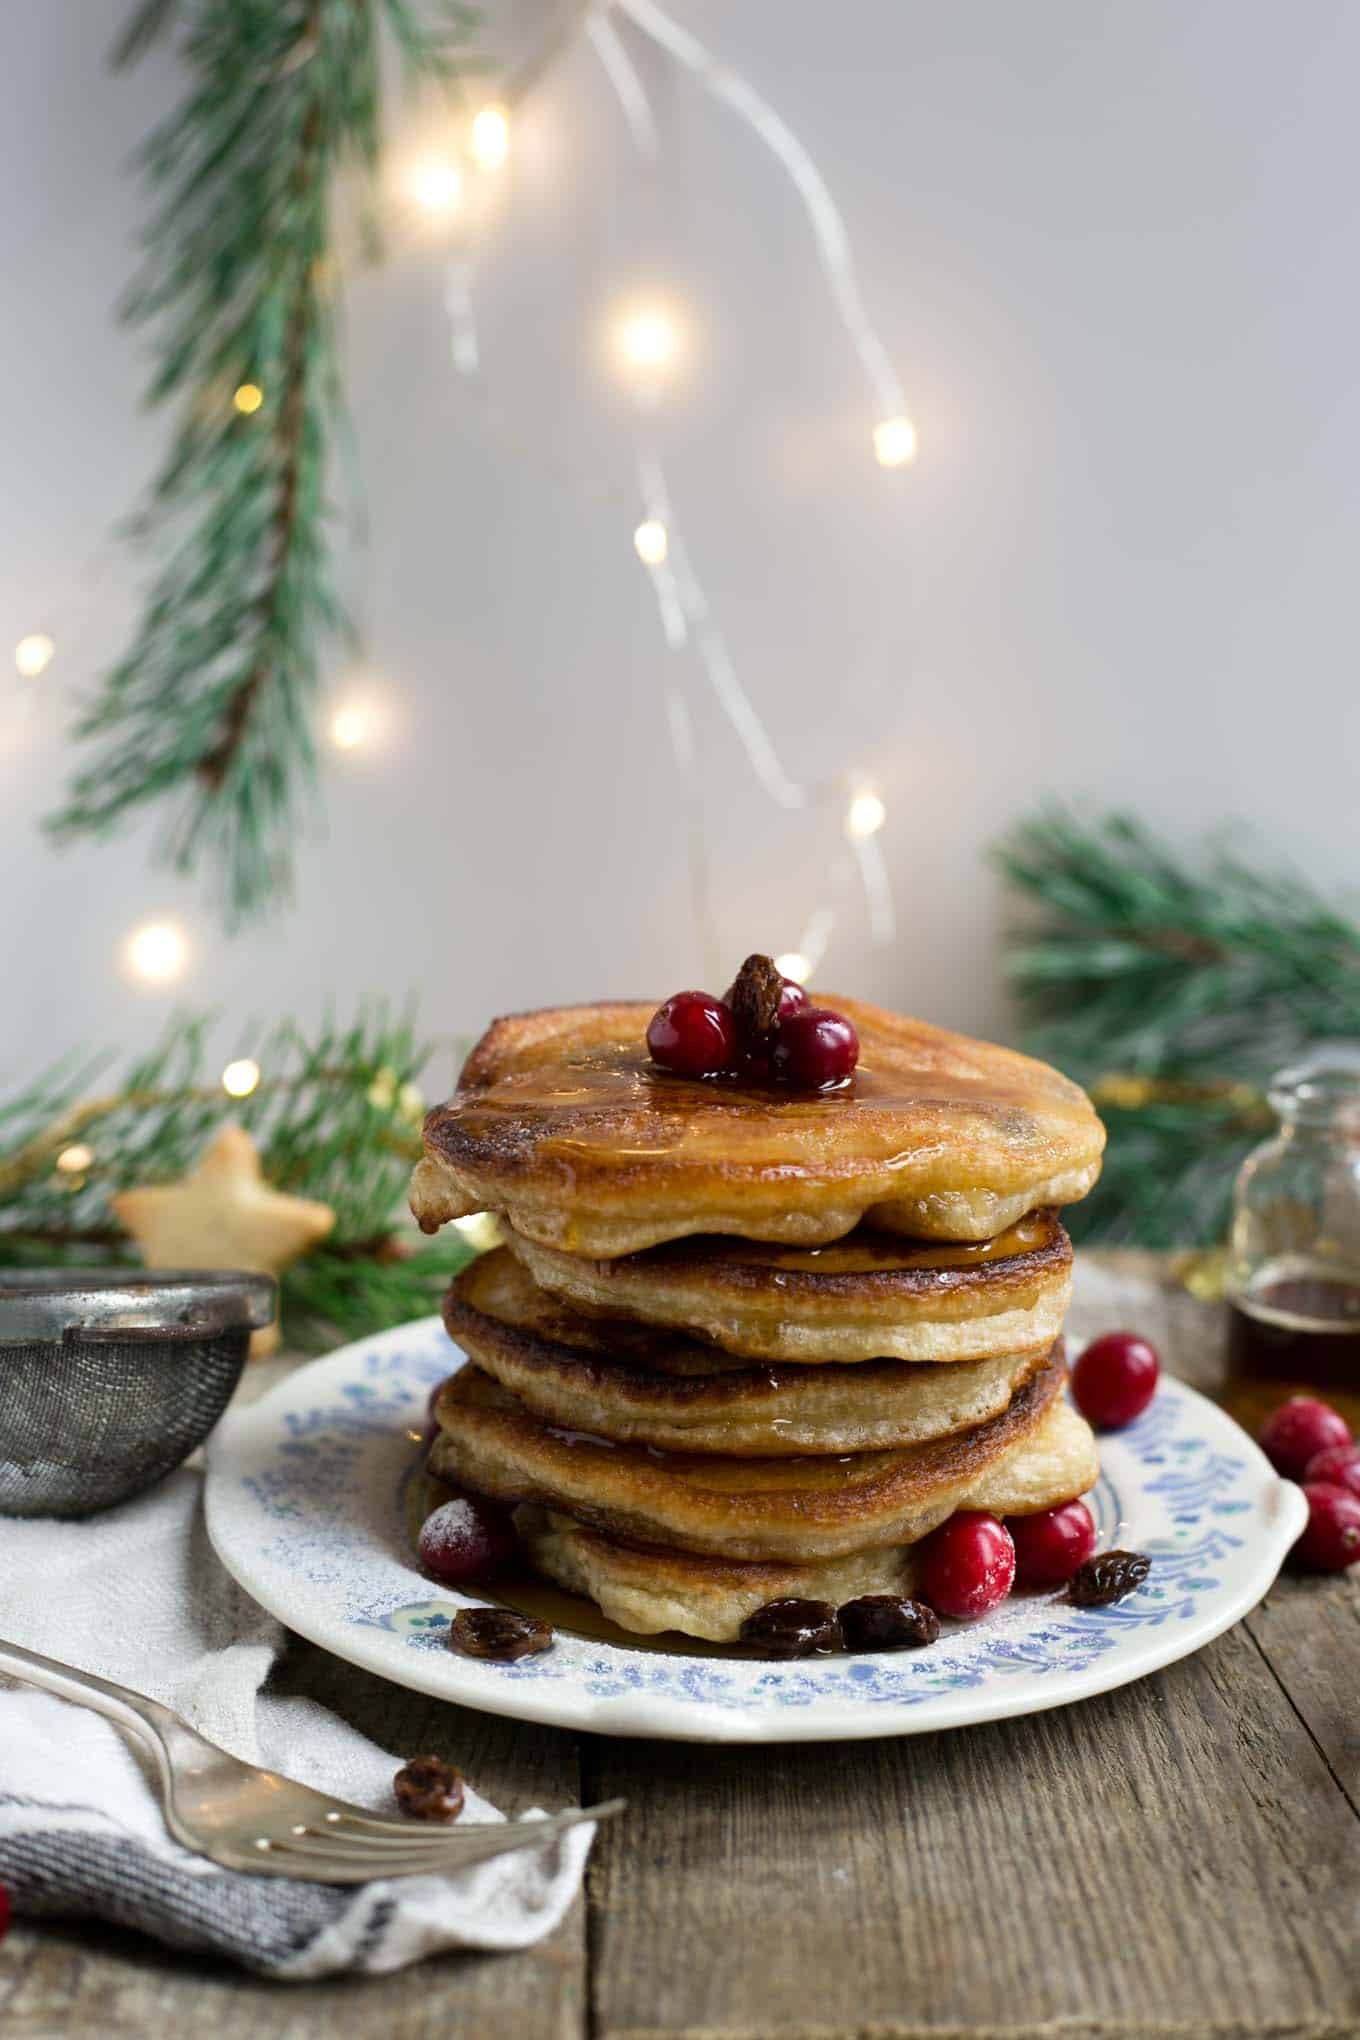 Rum & raisin pancakes, delicious and super festive treat for #Christmas breakfast! #vegan #pancakes #dairyfree | via @annabanana.co